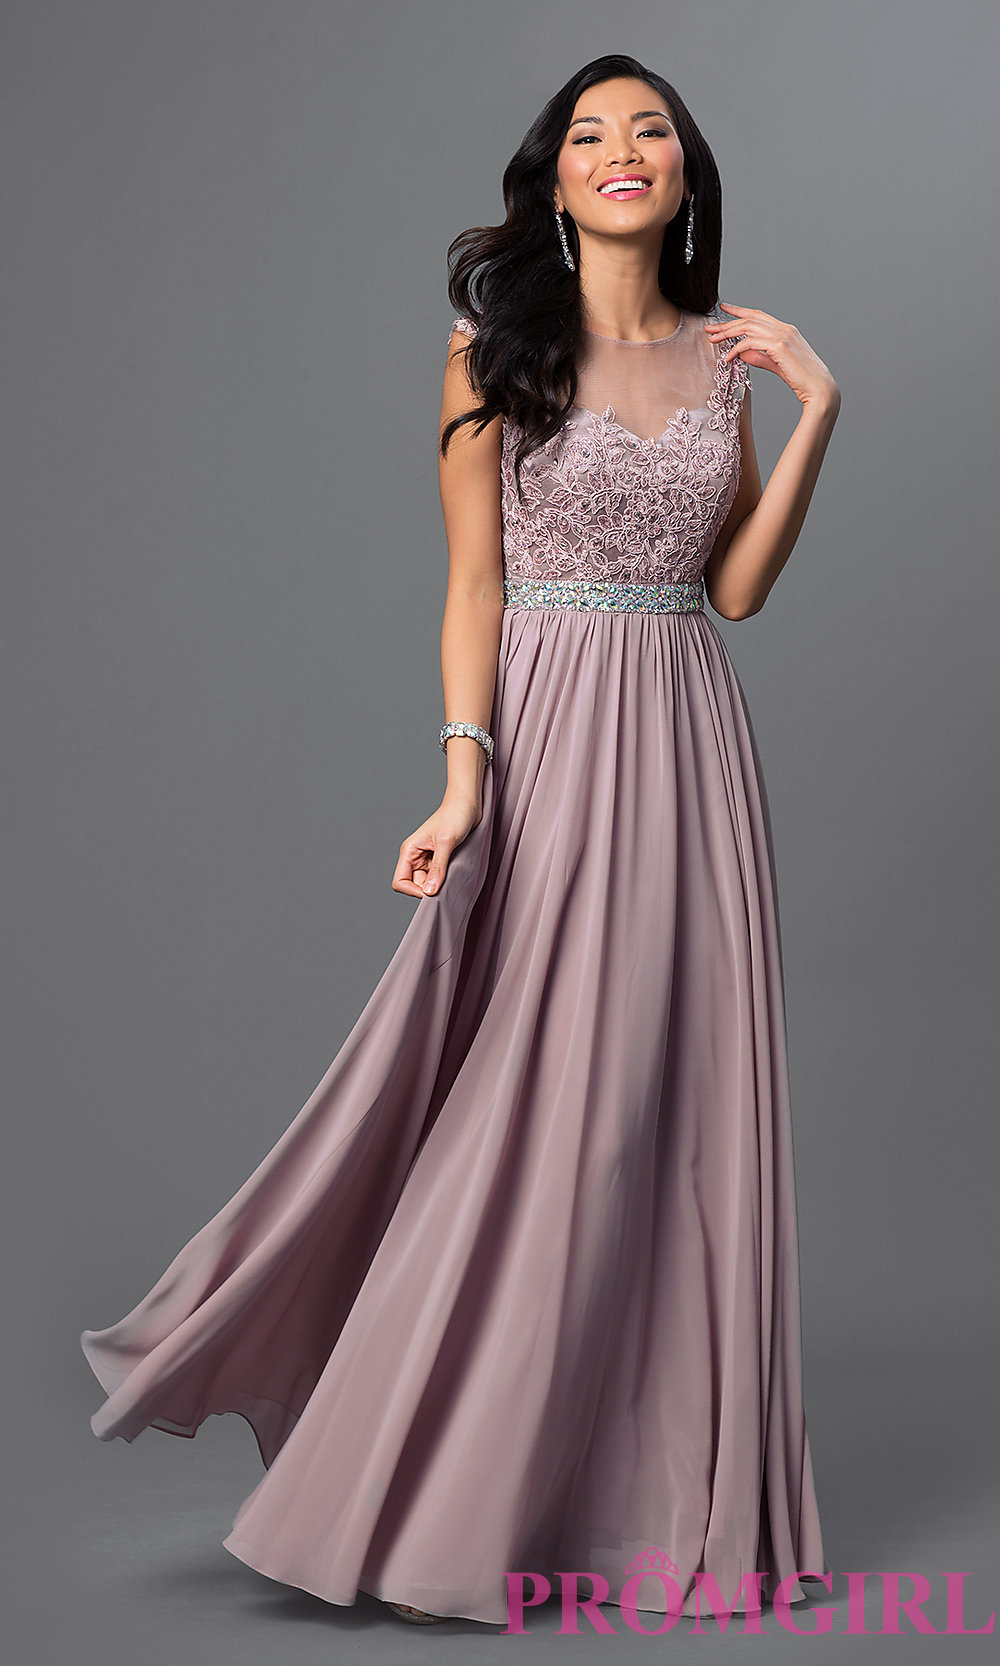 maxi-dresses-for-christmas-3